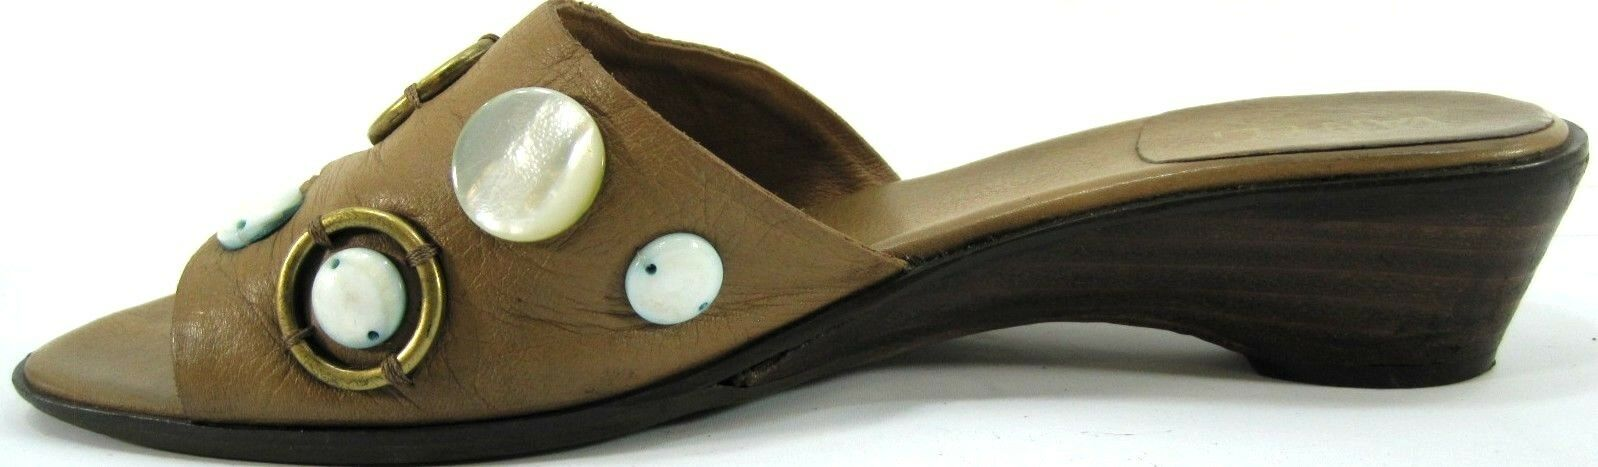 Van Eli Women Heels Size 8M Tanish Tanish Tanish Brown Sandals Heels 1.5 In High Made In  d31135